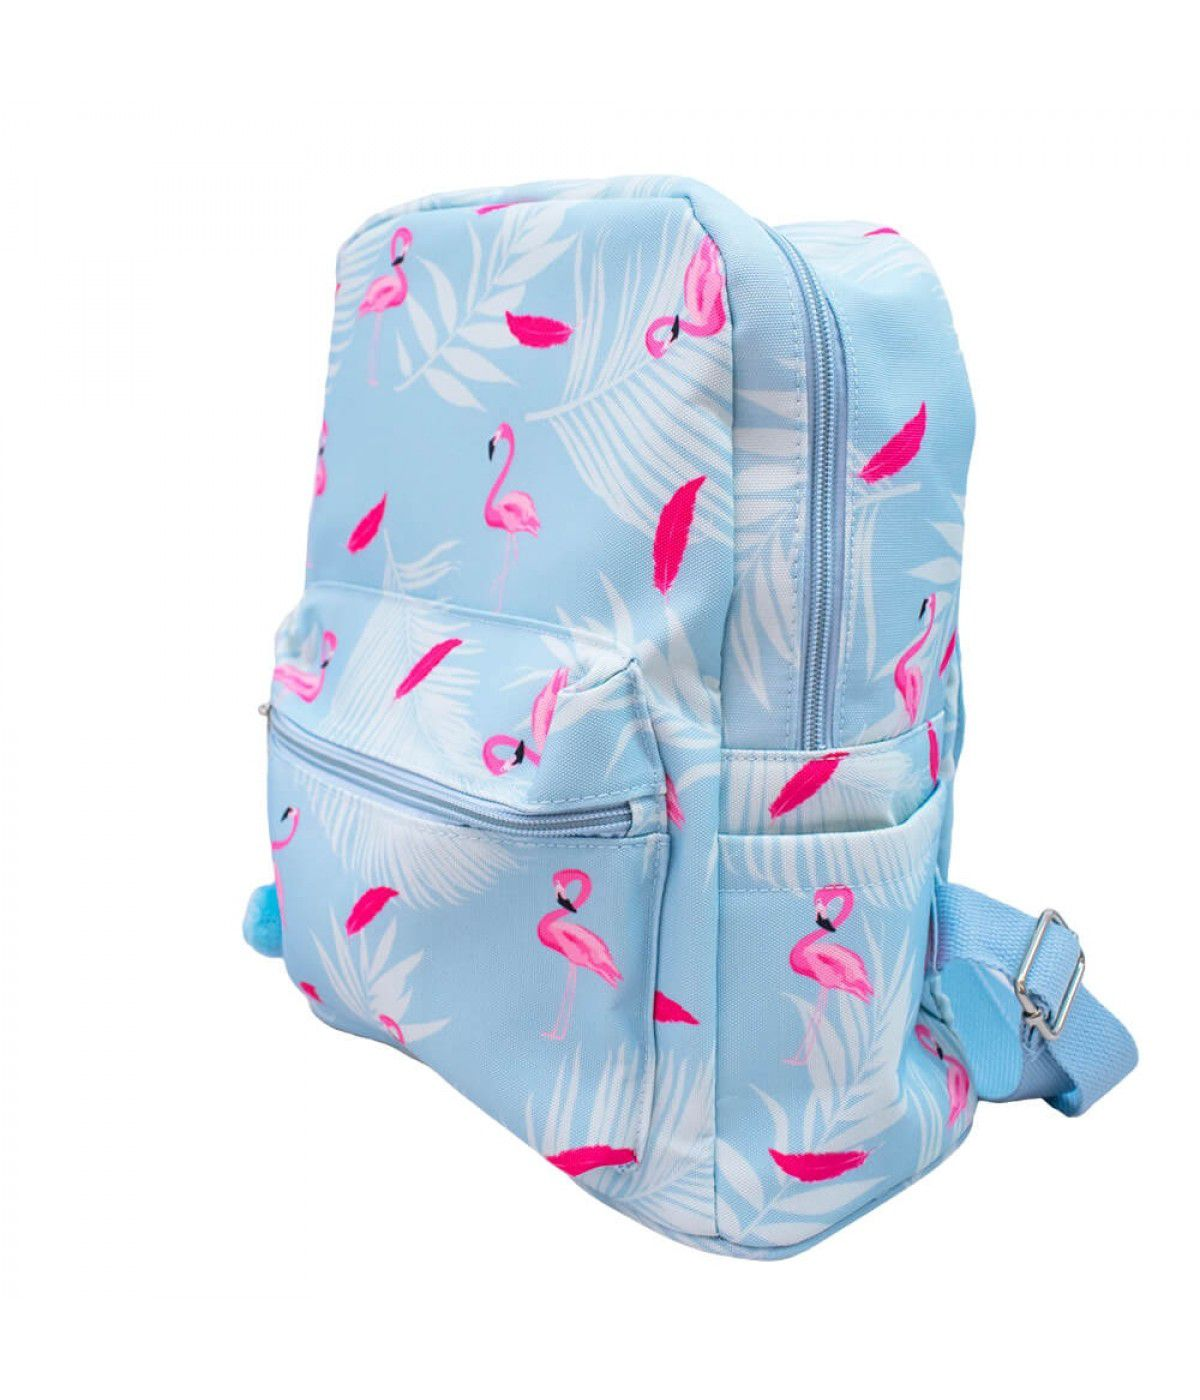 Mochila Flamingo Volta as Aulas